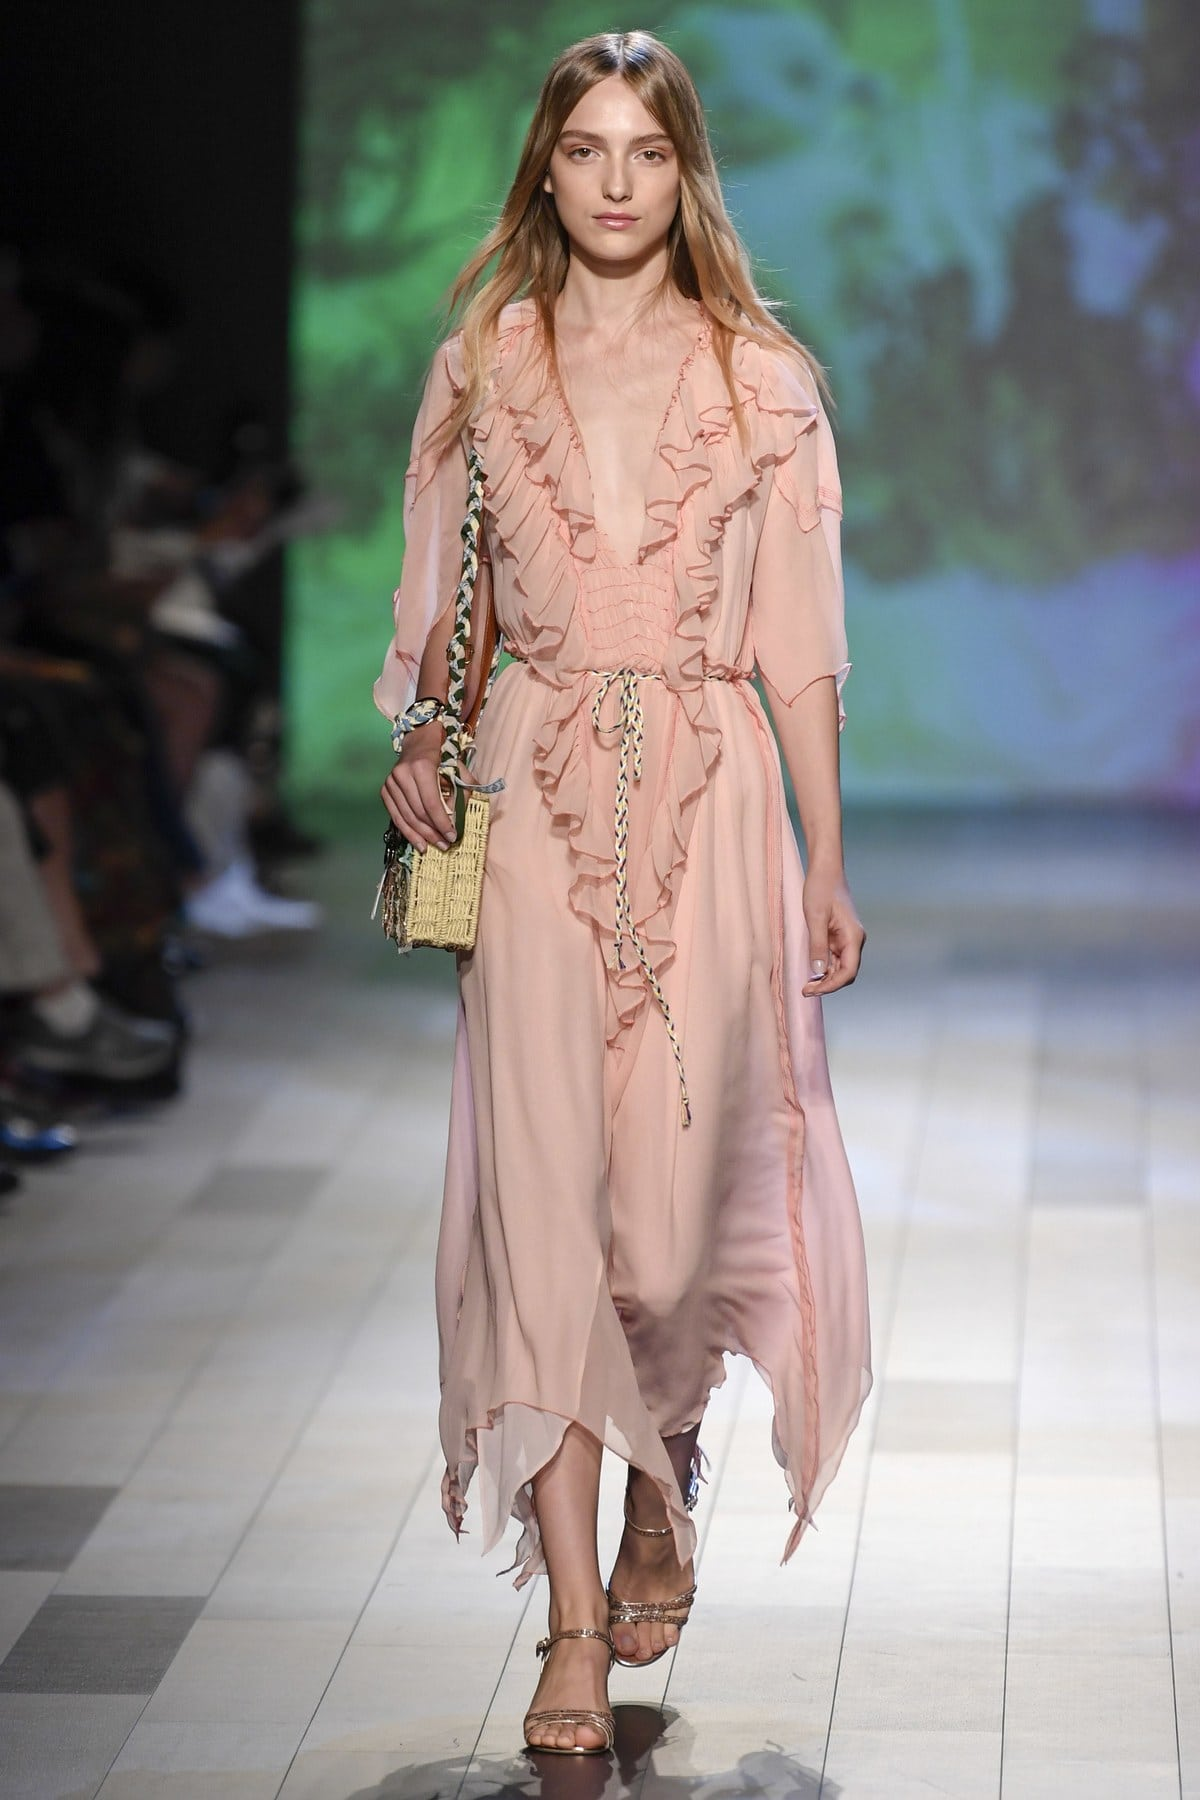 Outfit, Fashion, Fashion Show, Catwalk, Model, Model Life, Runway, Dress, Look, OOTD, Fashion Week, Trend Report, Trends, Trendy, SS18, Spring Summer 2018, NYFW, New York, New York Fashion Week, Runway Walk, Vivienne Tam, Orange, Pencil Skir